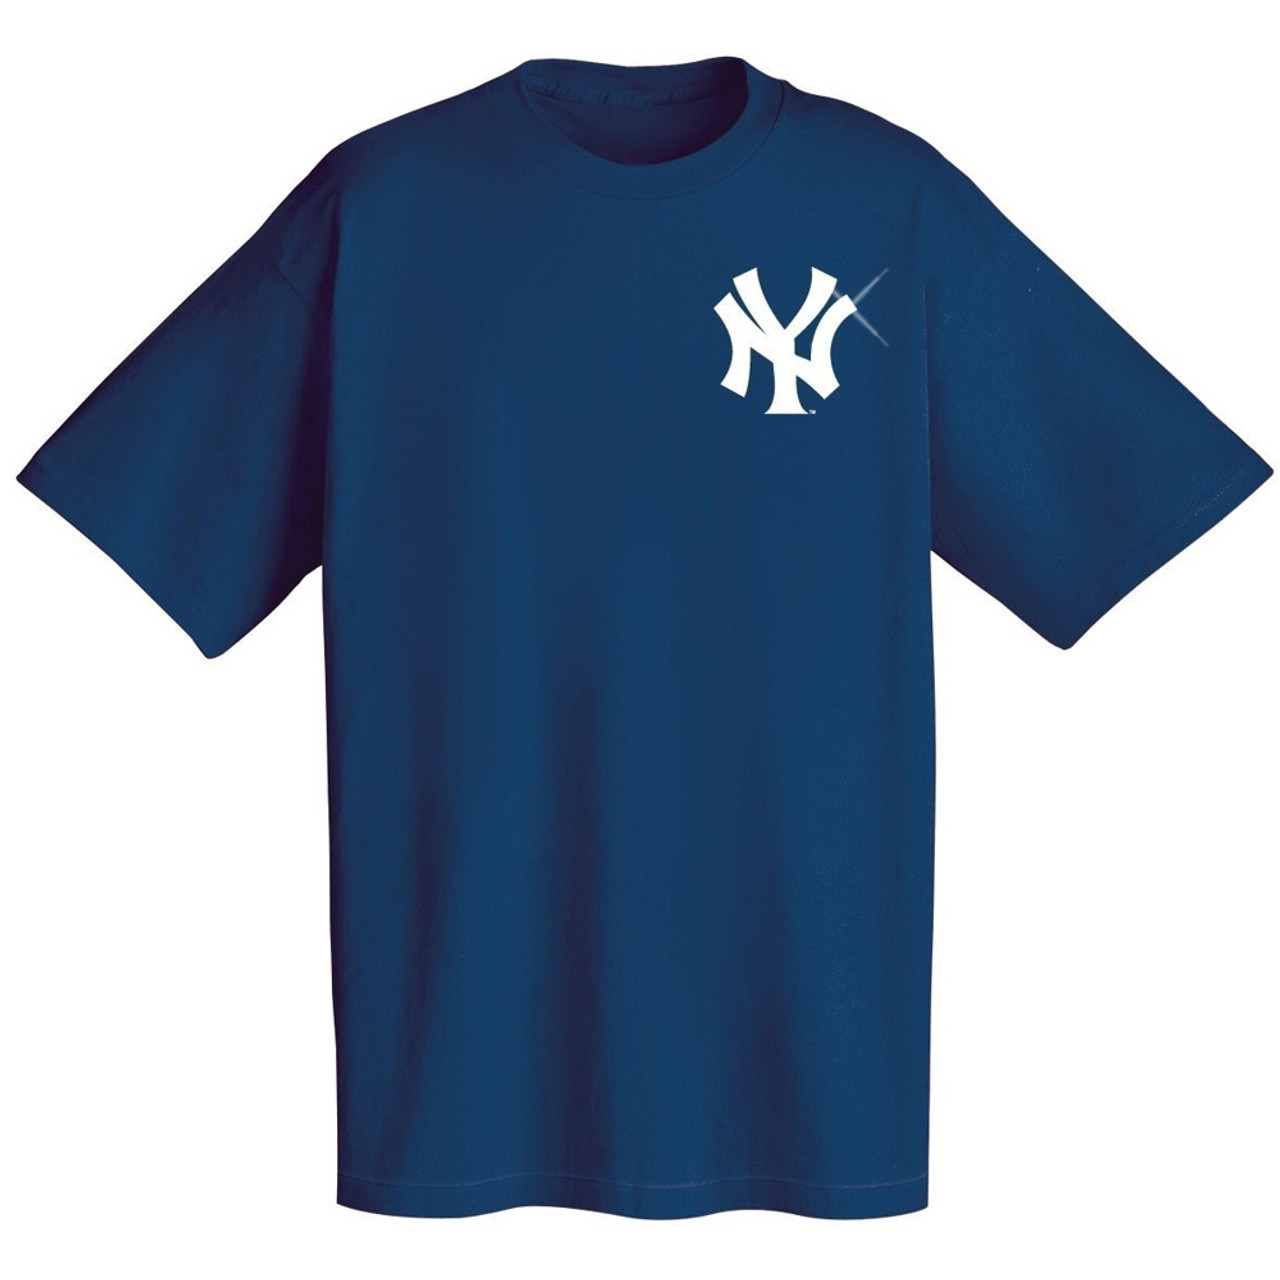 T Yankees T Official Ny Shirtnavy Official Yankees Ny nv80OmNwy